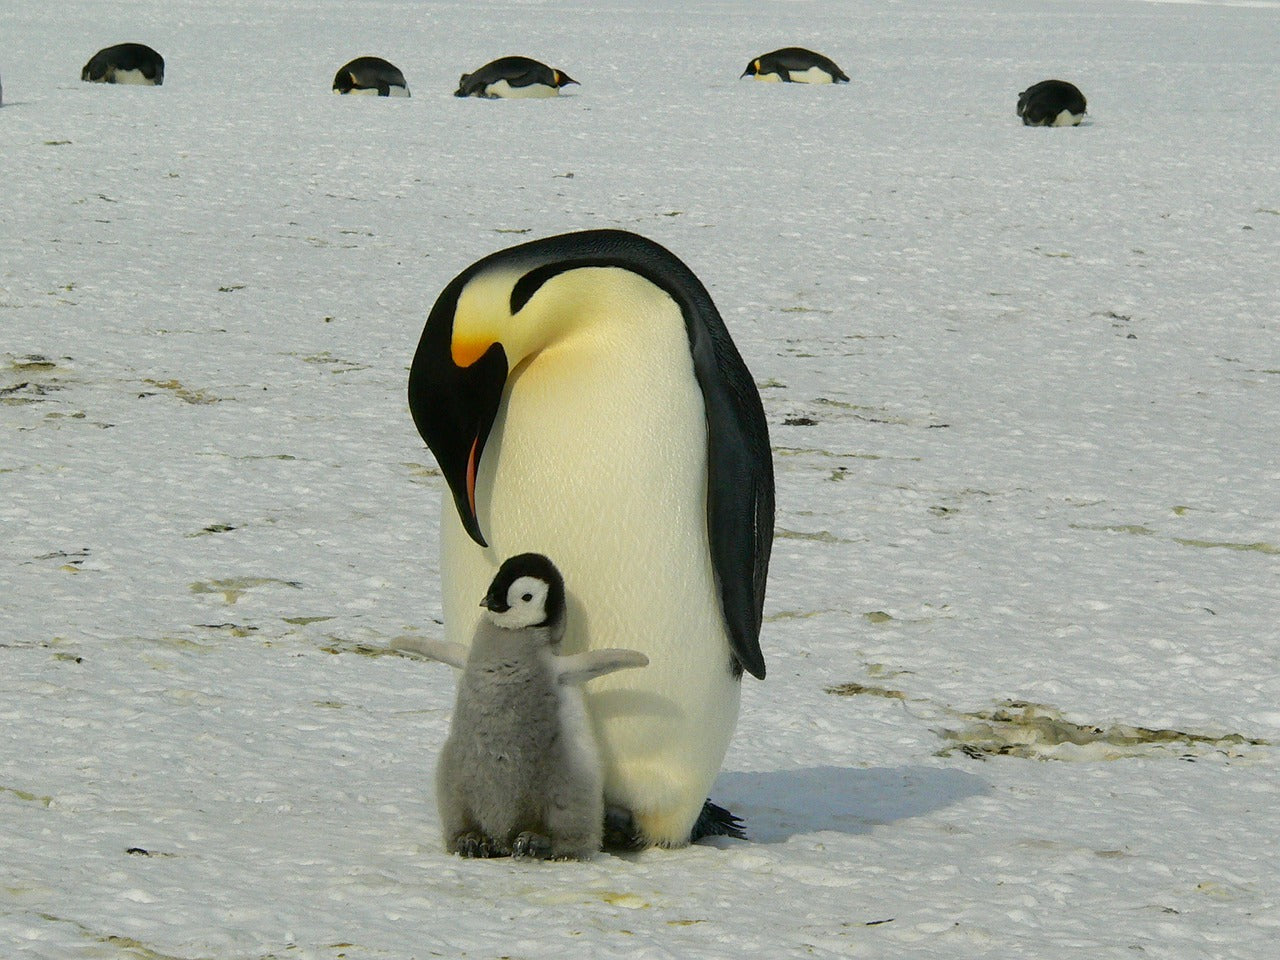 Penguins: 6 Interesting Facts